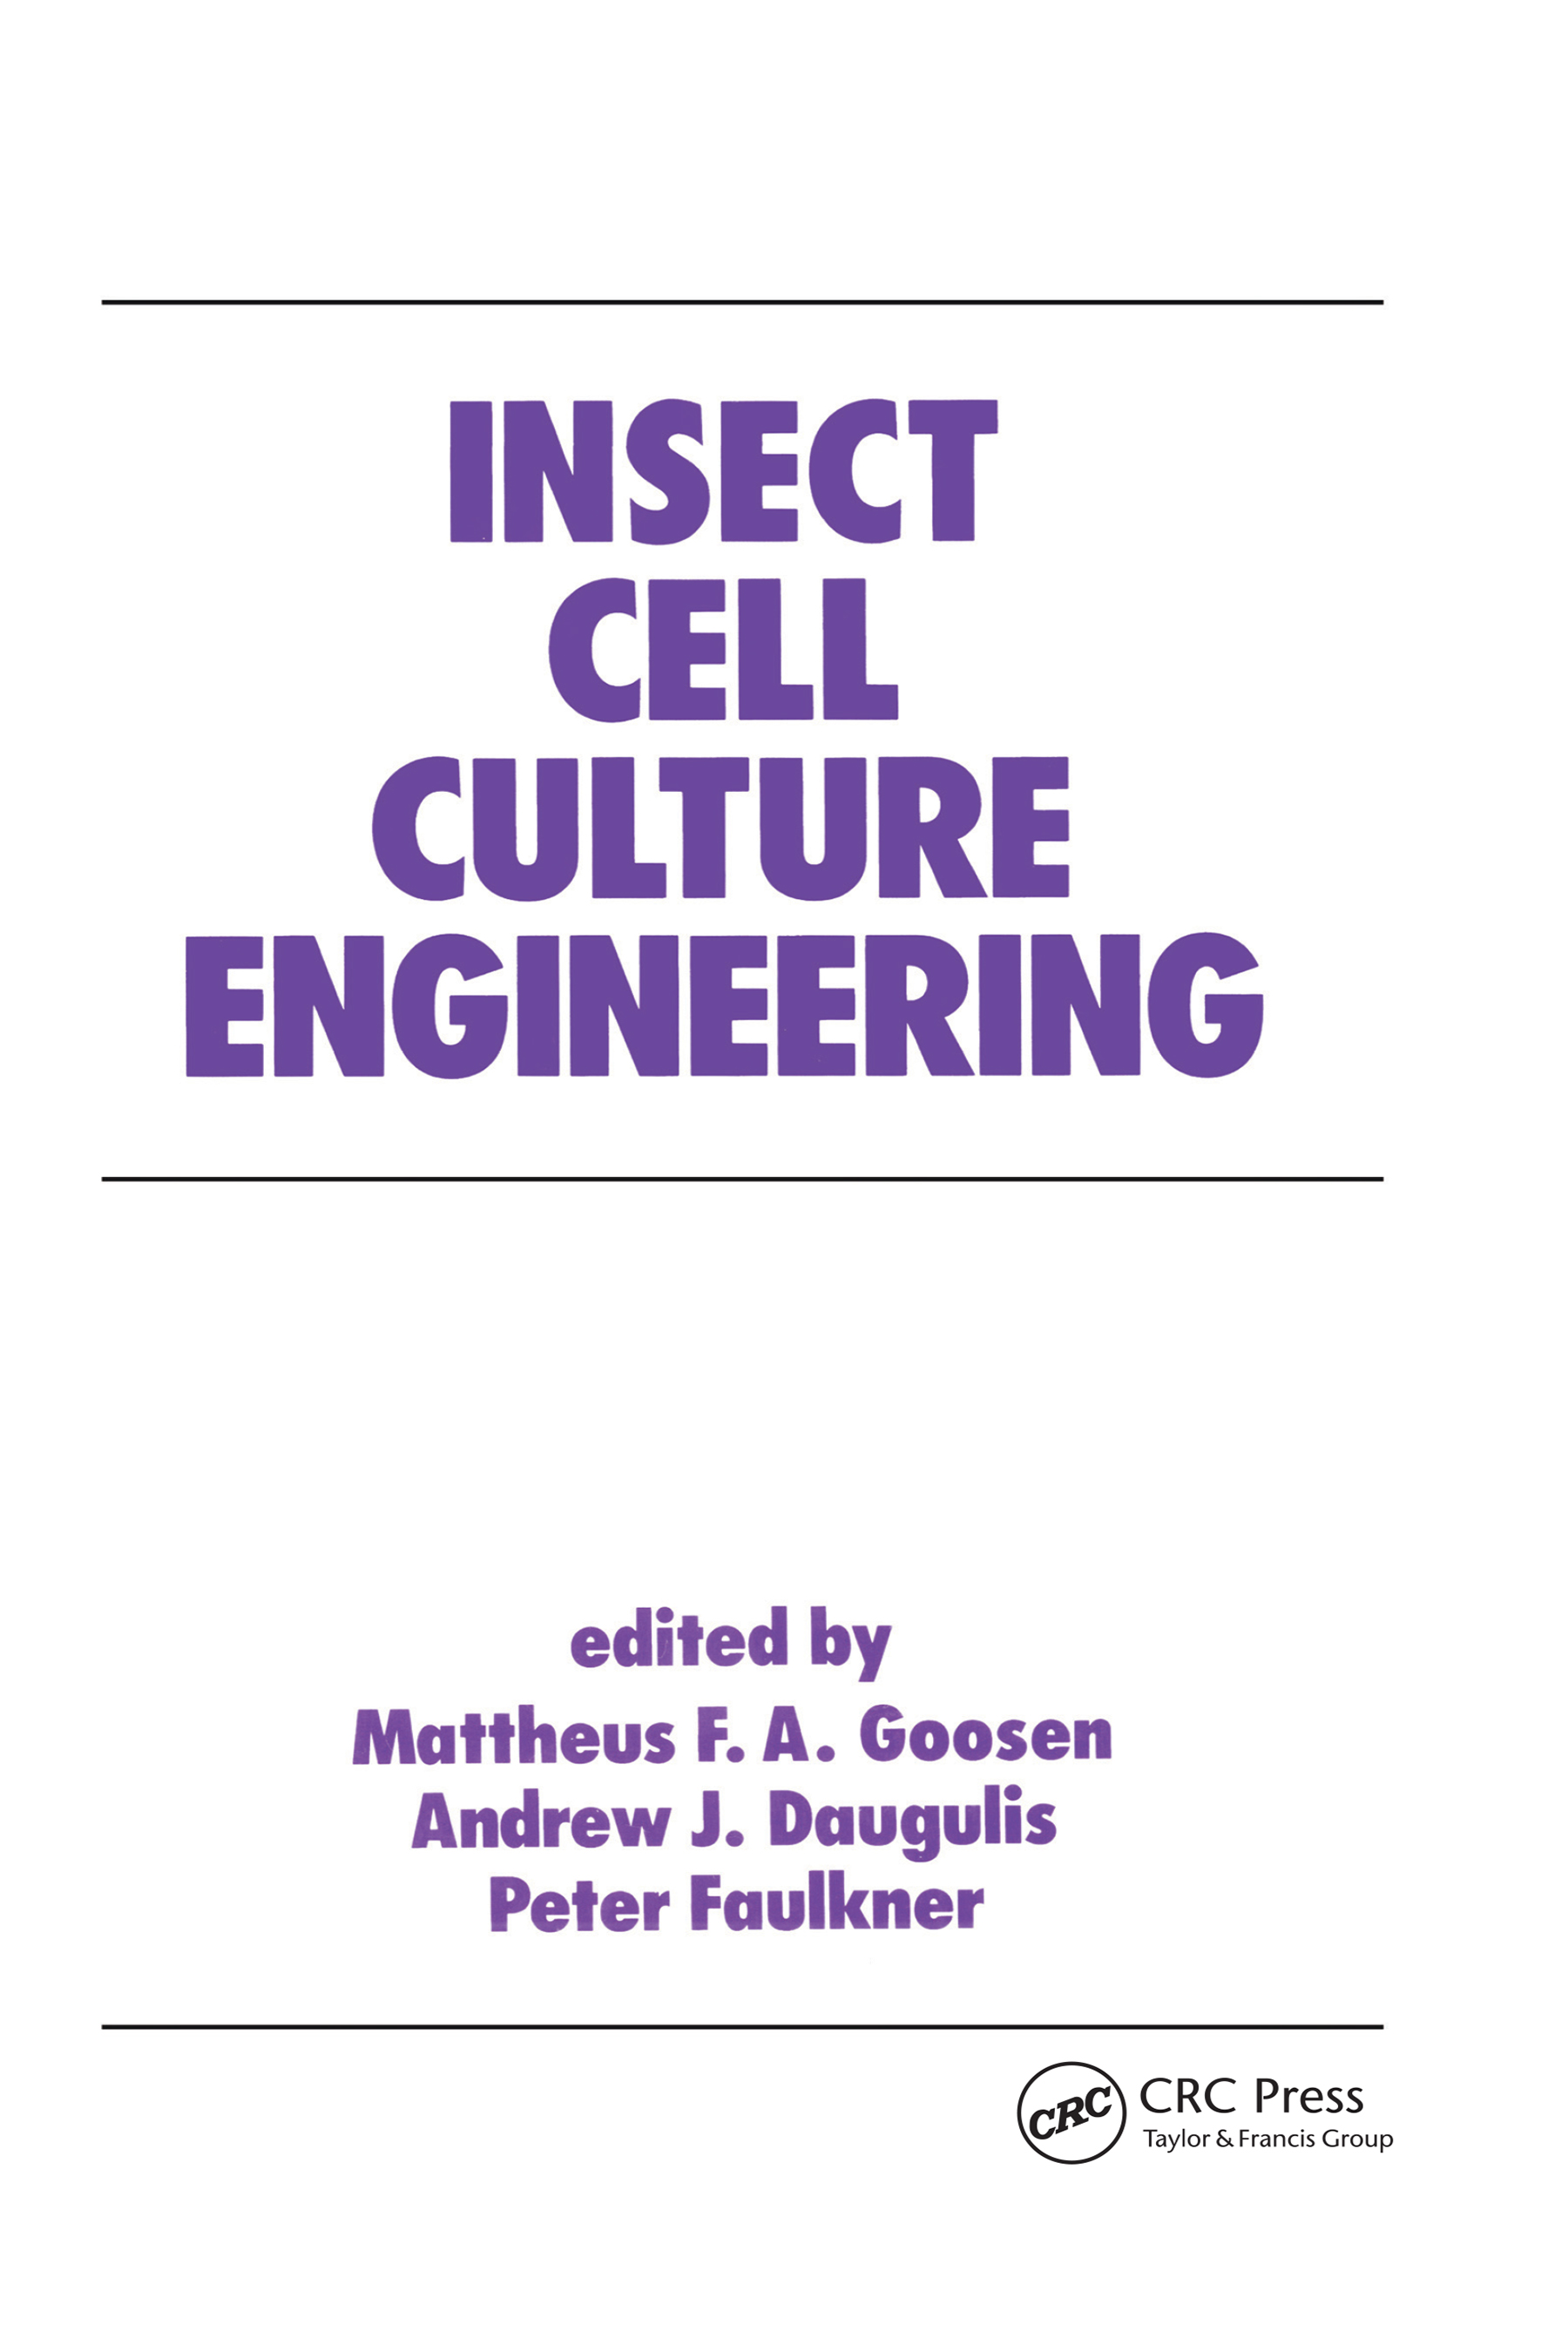 Bioreactor Design for Insect Cell Cultivation: A Review